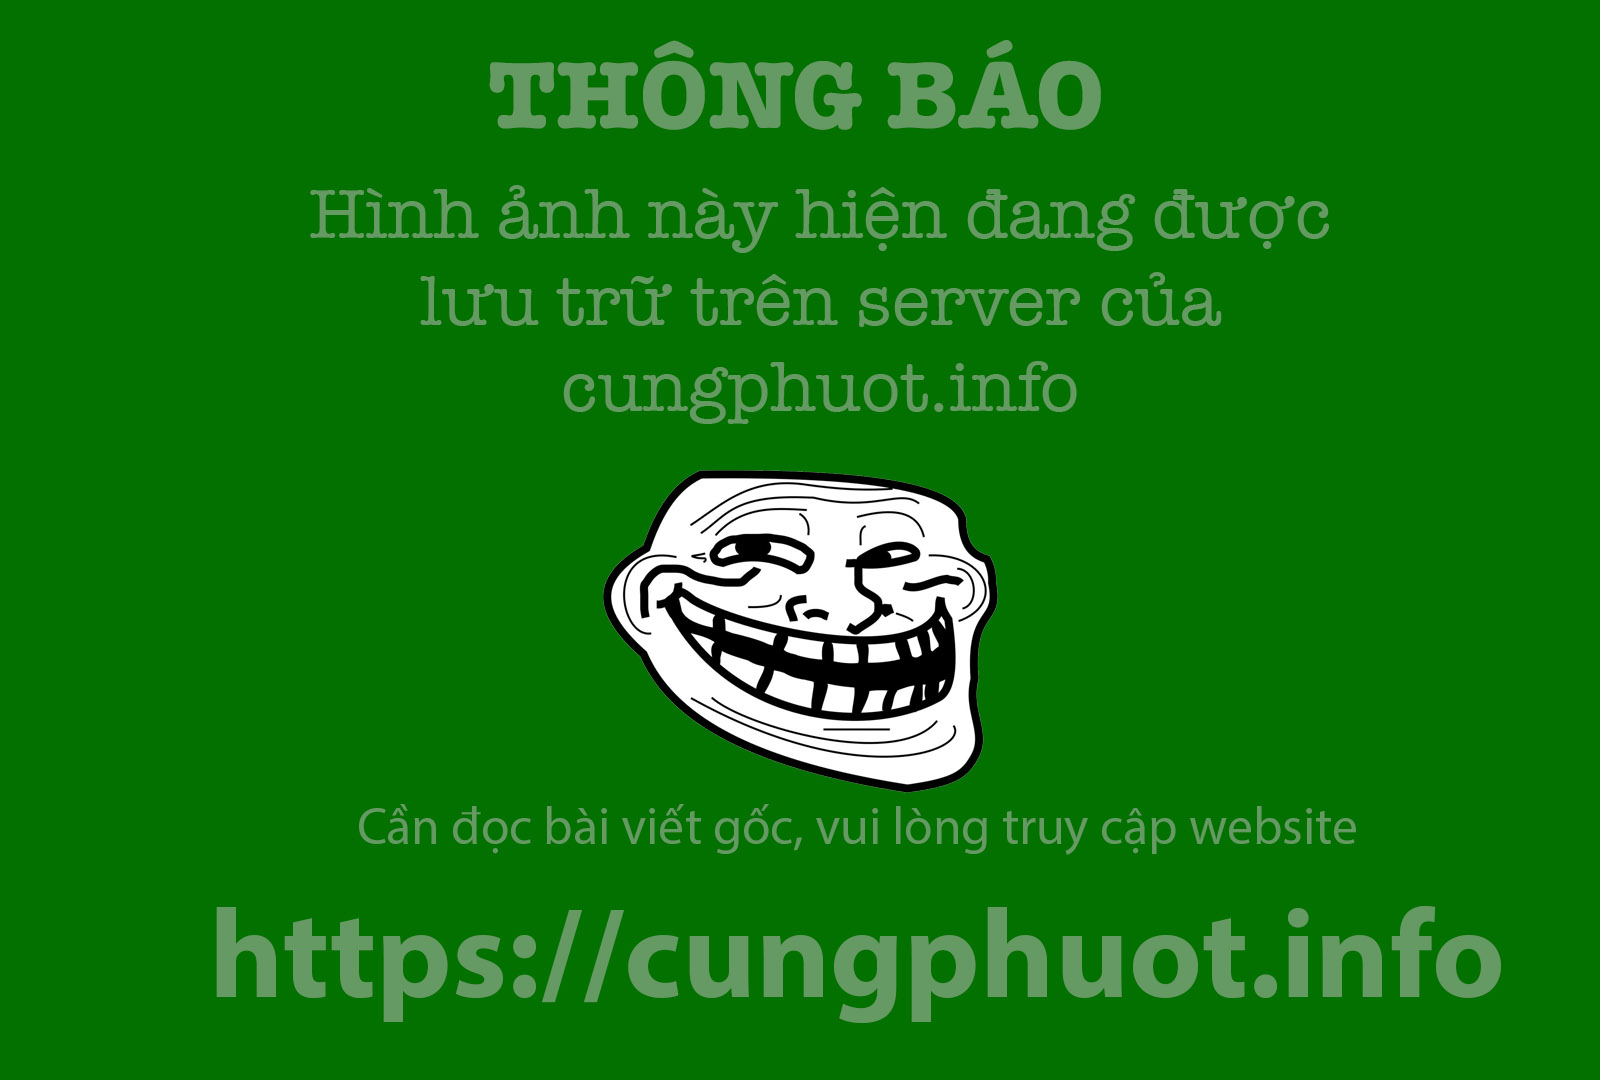 May von nui tren cong troi Muong Long hinh anh 7